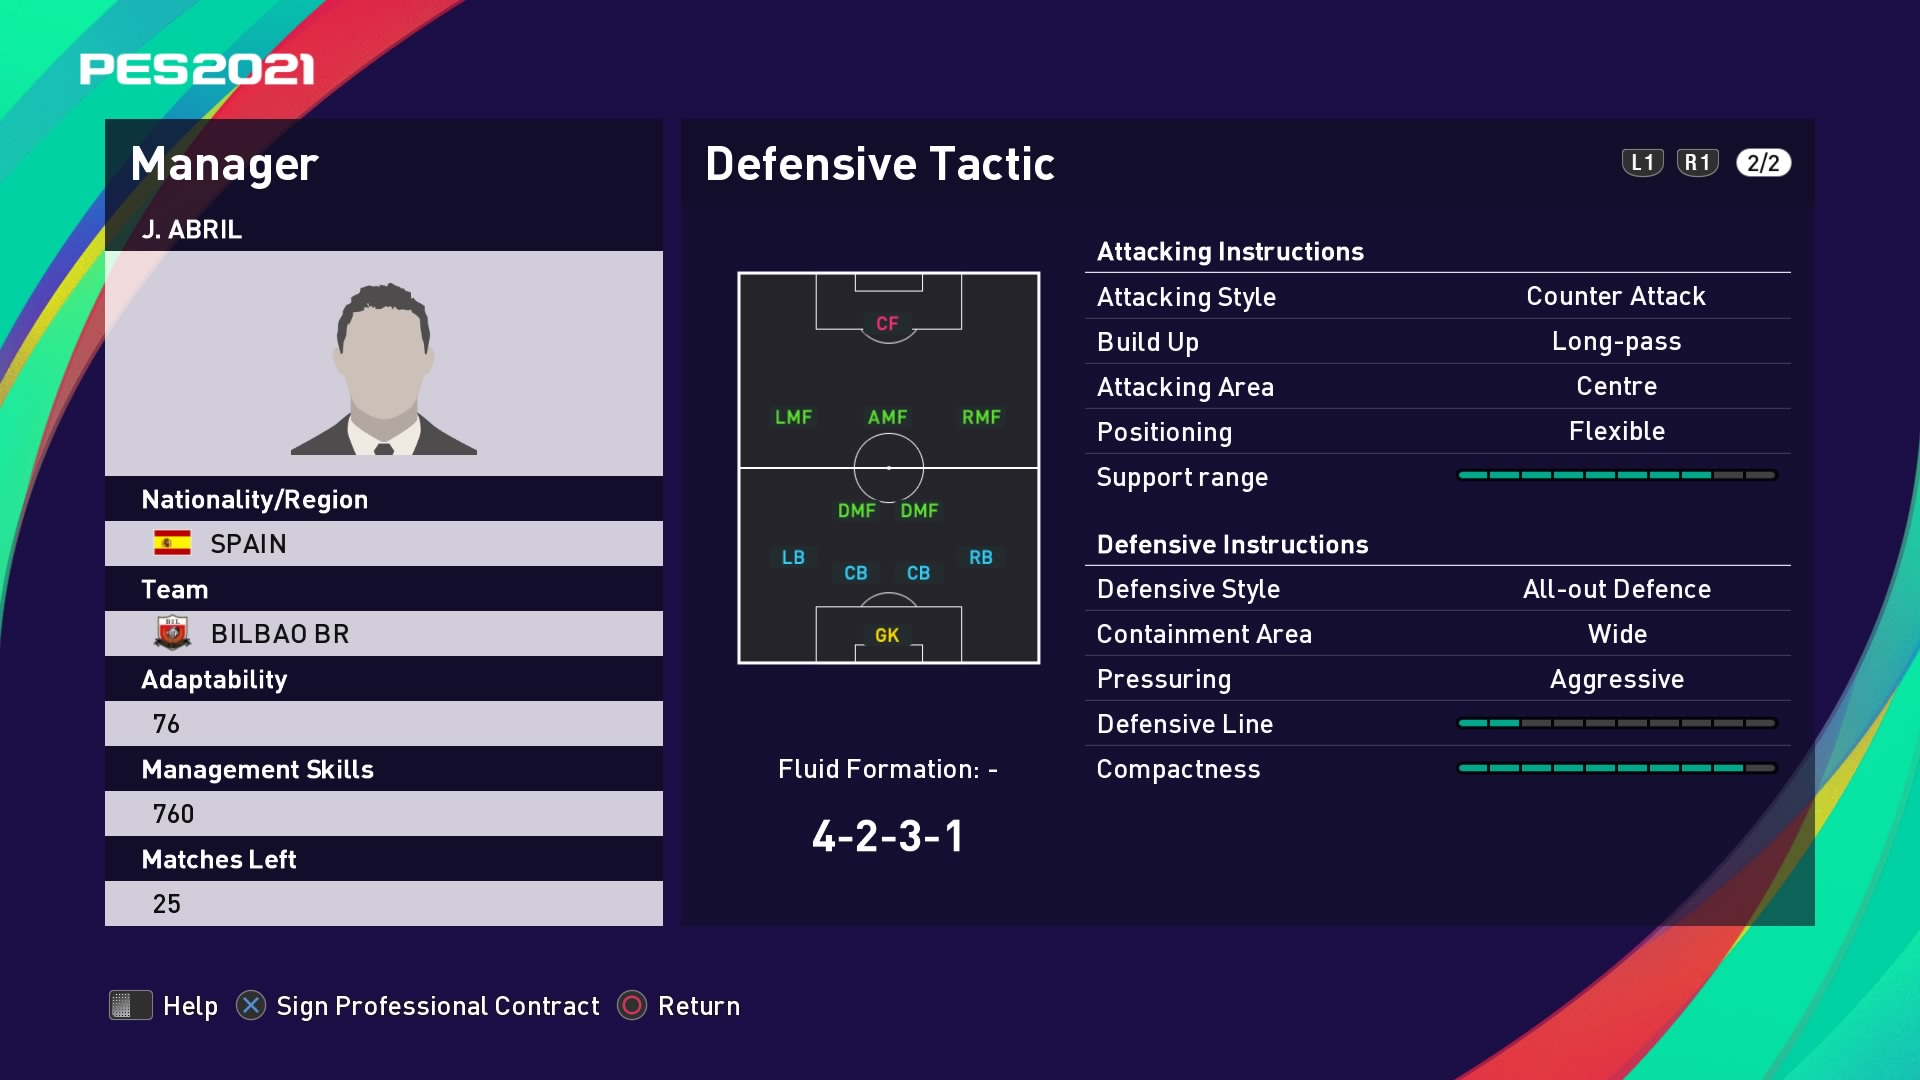 J. Abril (Gaizka Garitano) Defensive Tactic in PES 2021 myClub